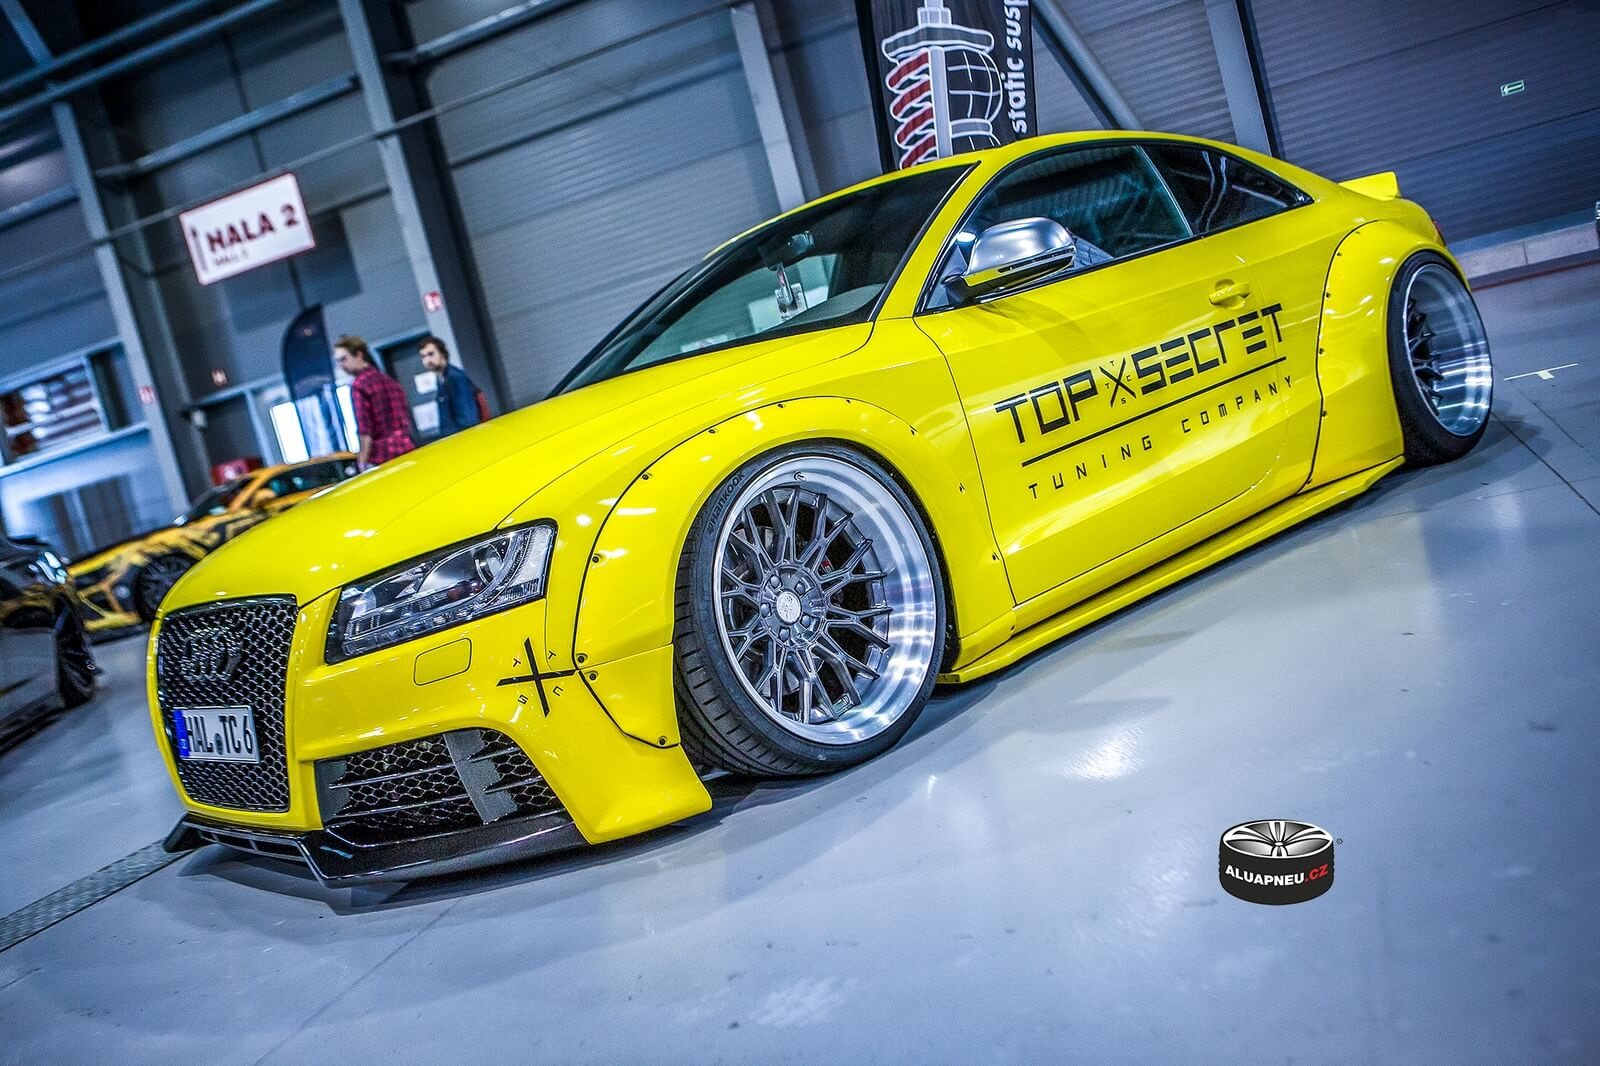 Alu kola Audi A5 yellow Top Secret Prague Car Festival 2018